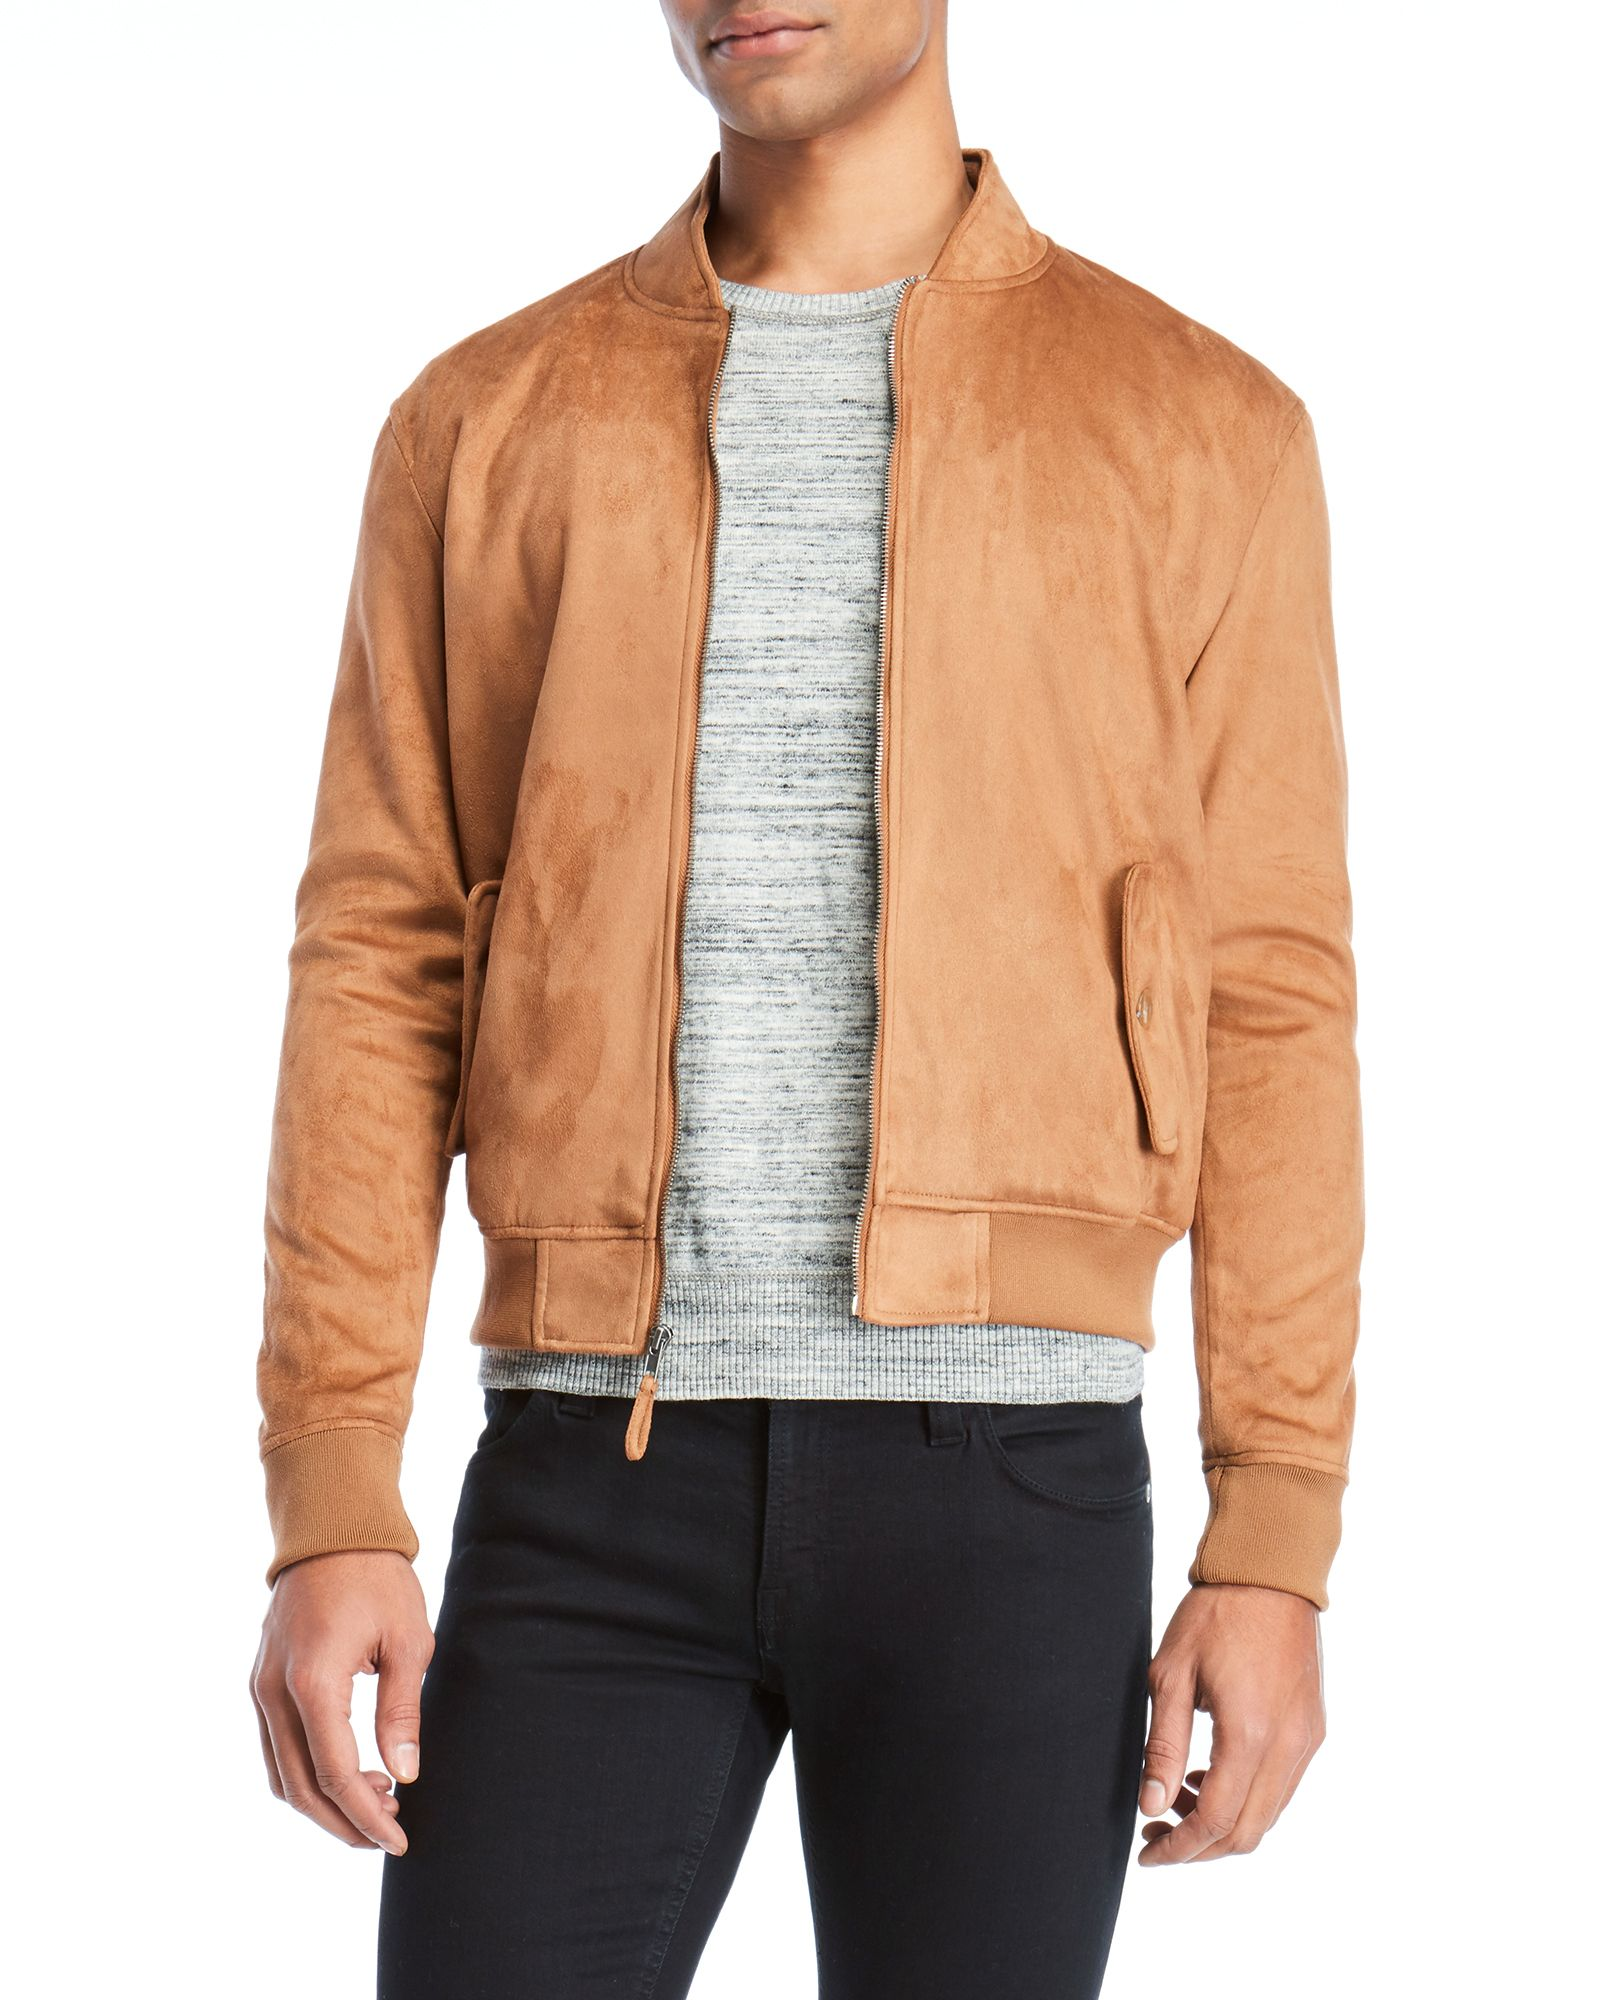 Guy Laroche Faux Suede Bomber Suede Bomber Bomber Jacket Faux Suede [ 2000 x 1600 Pixel ]